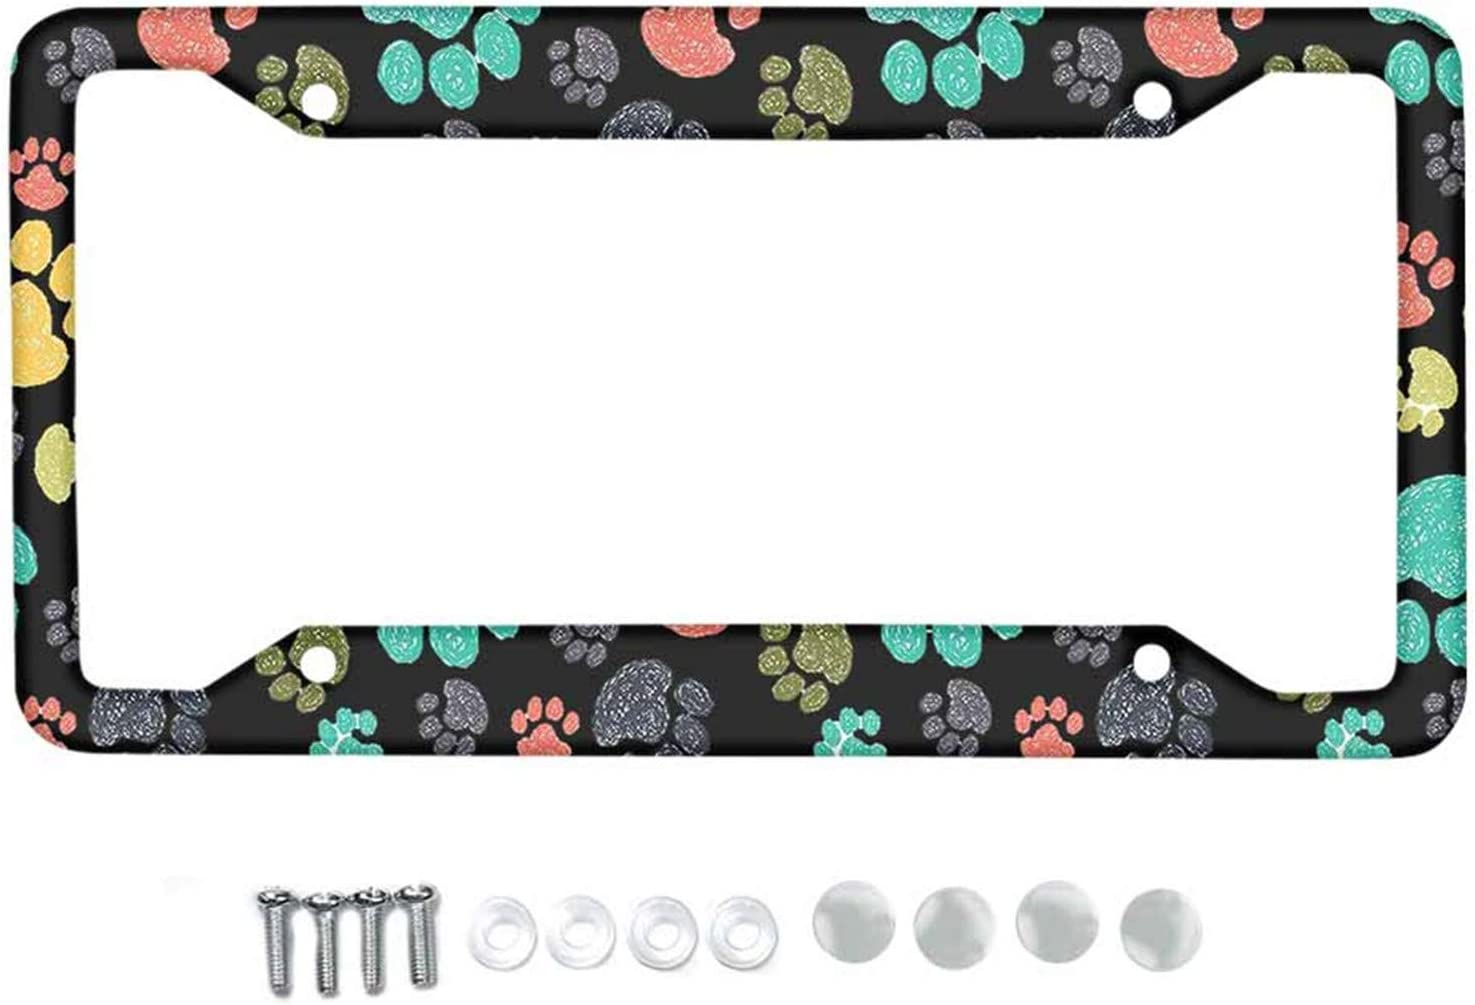 Frestree Rainbow Tie Dye Painting Metal License Plate Frame with Screw Caps Dust-Proof and Weather-Proof Durable